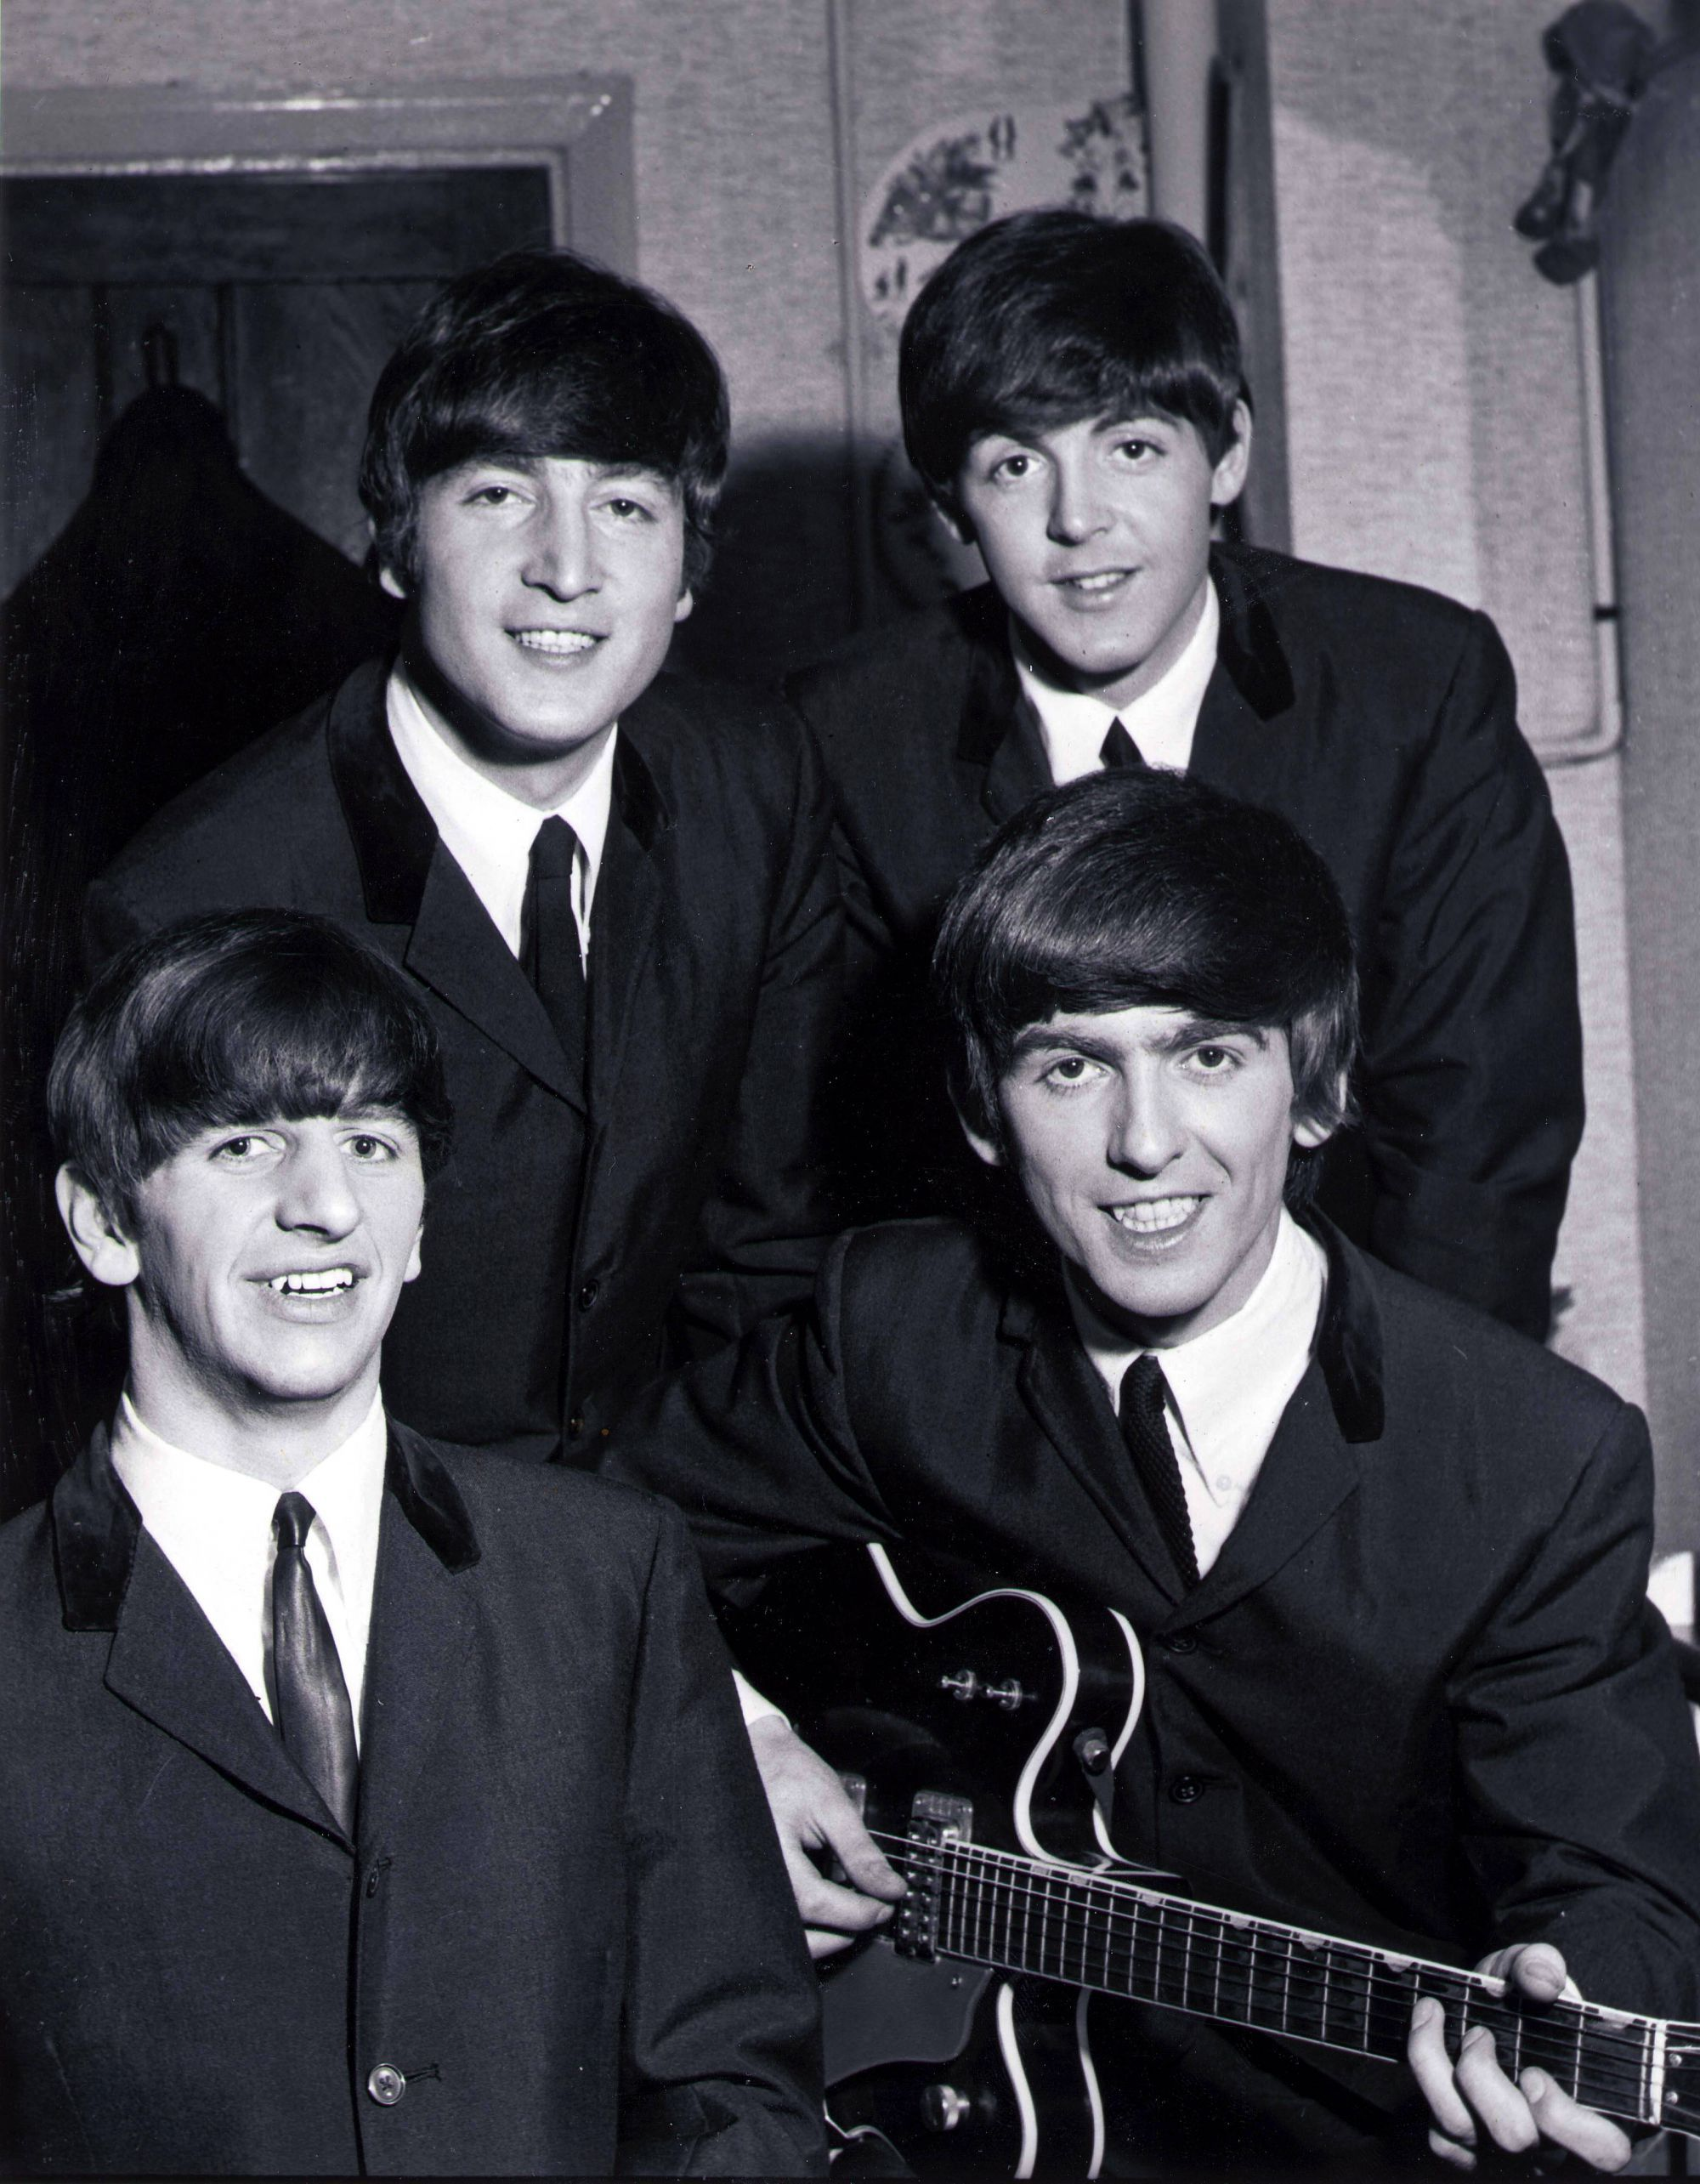 The Beatles Posed Backstage At The Finsbury Park Astoria, London